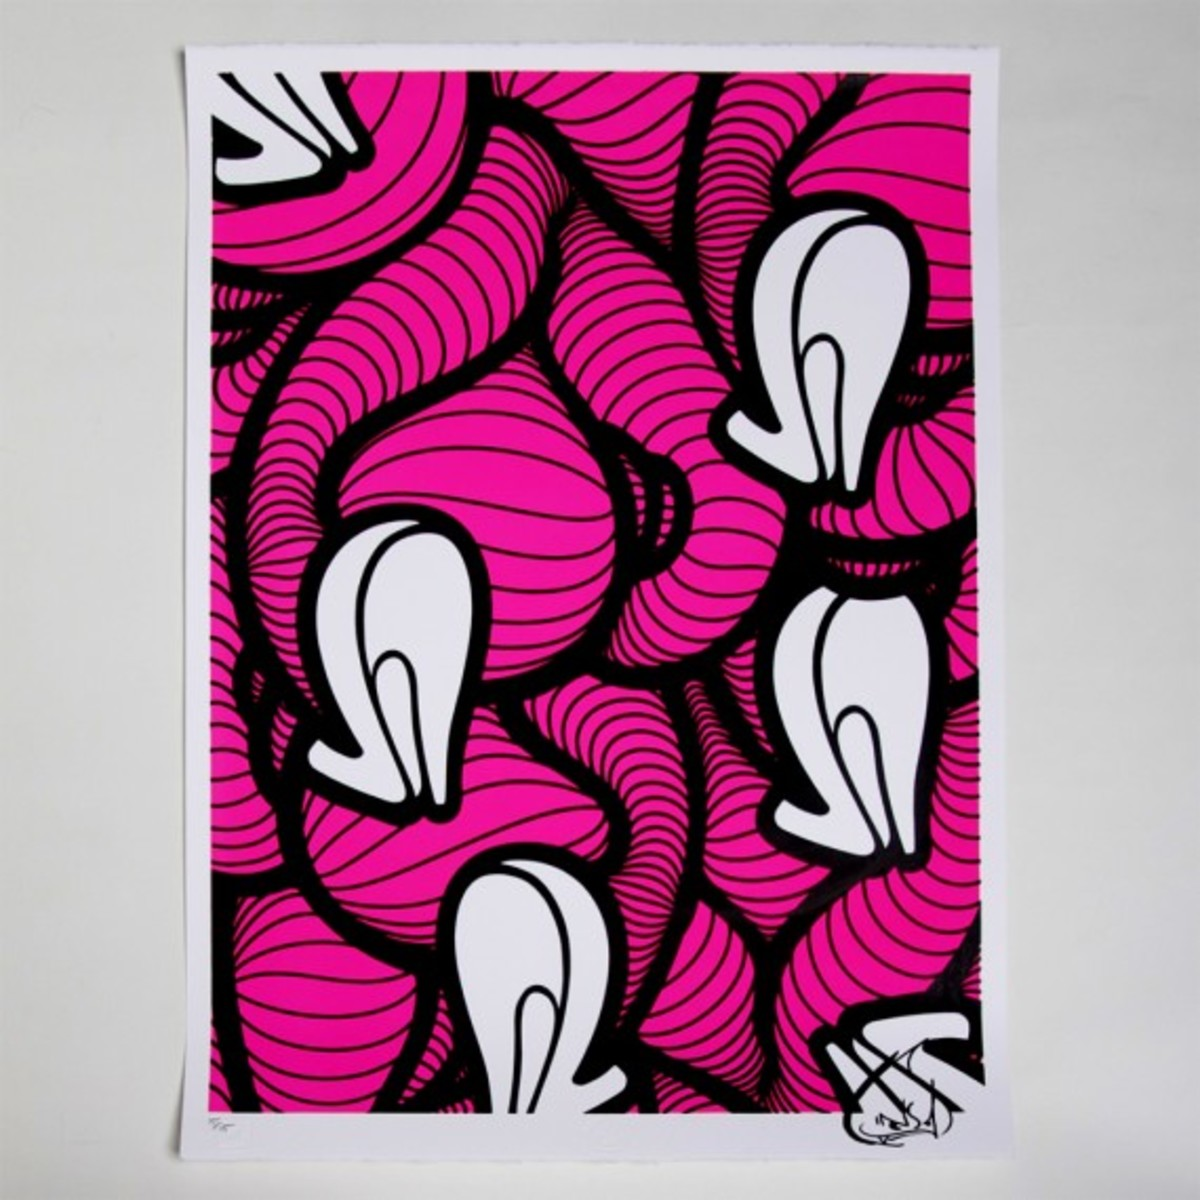 sf-special-edition-prints--neon-pink-inverted